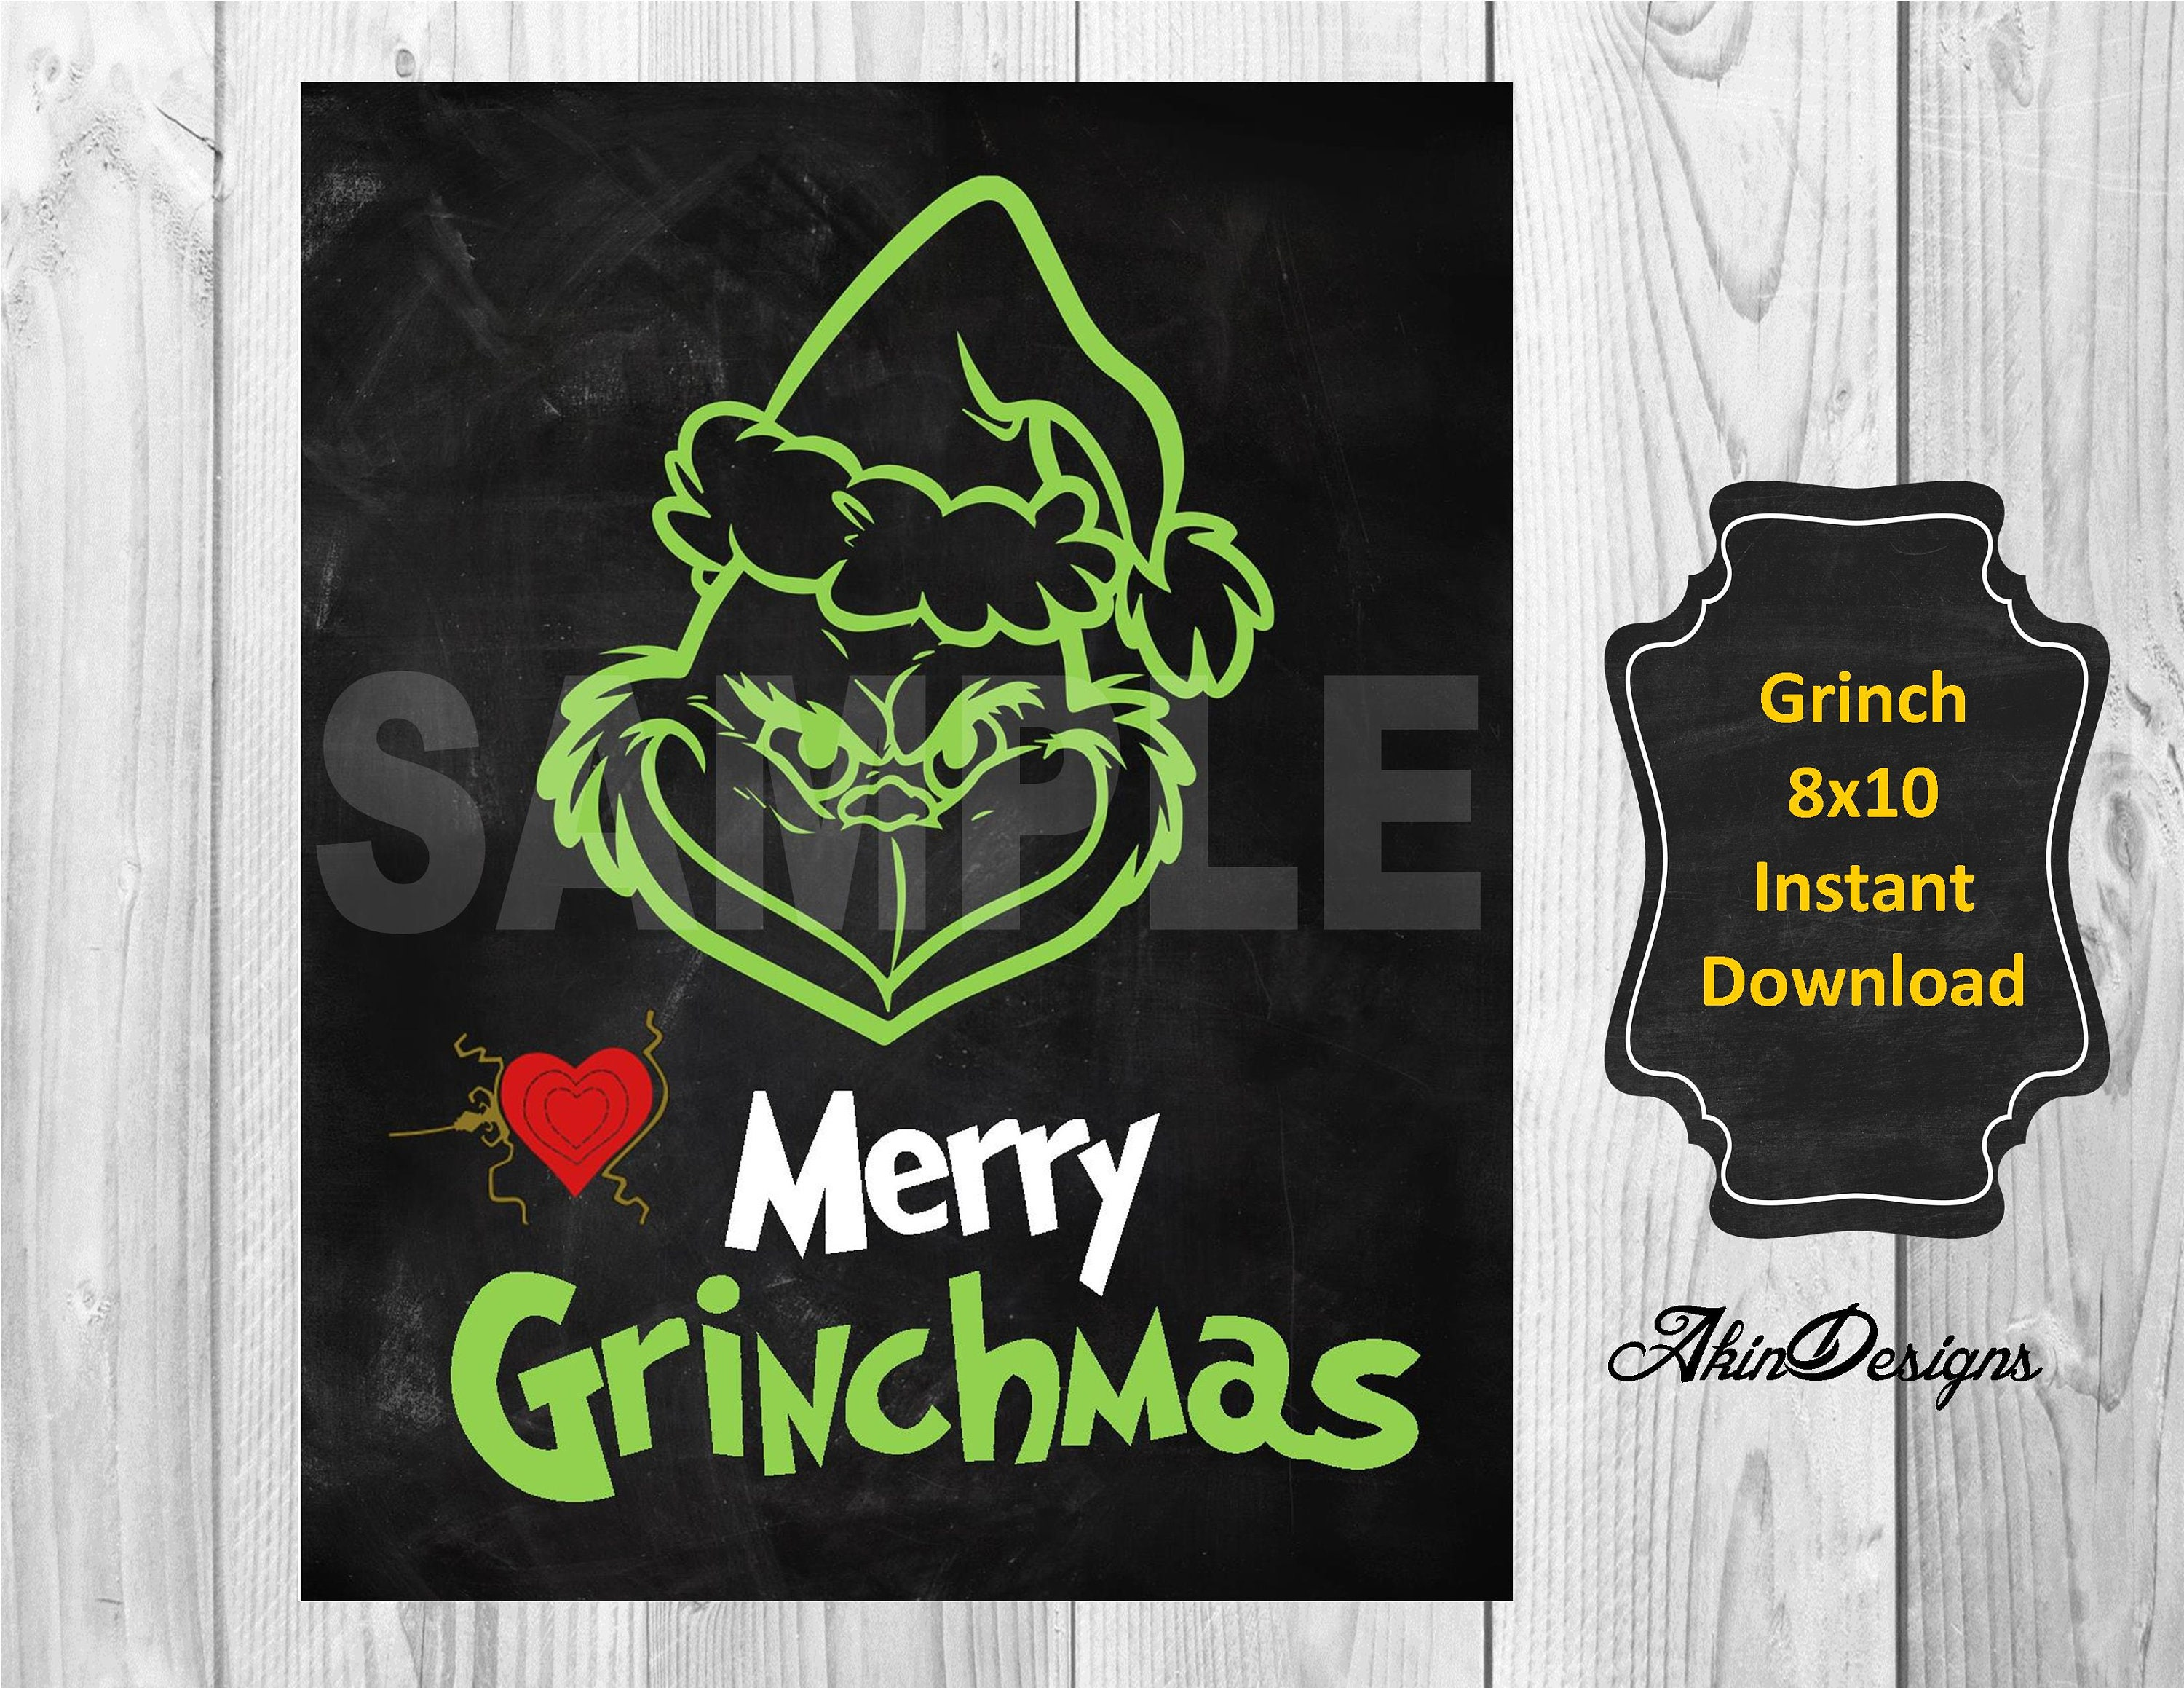 Grinch heart 8x10 instant download | etsy.